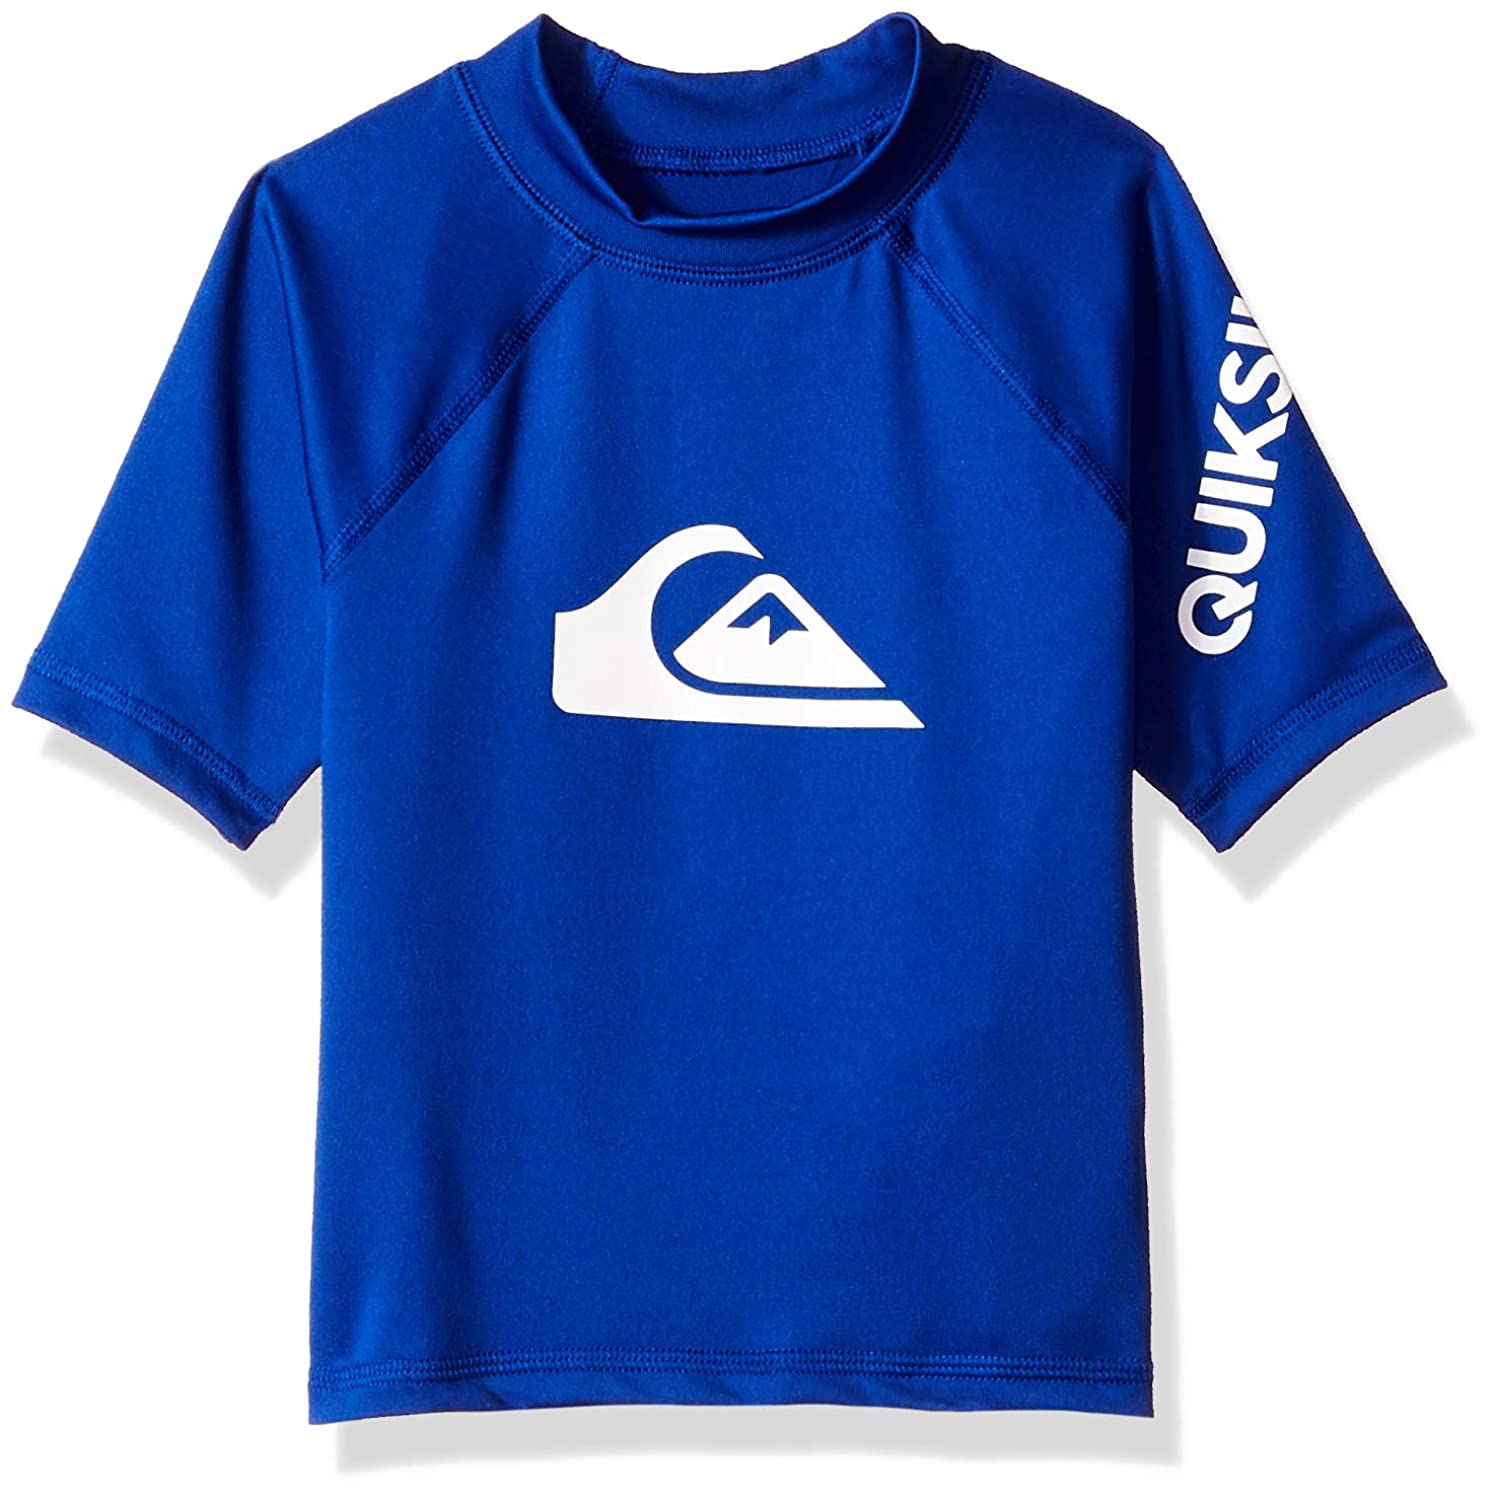 Quiksilver Children (youths) All Time Short Sleeve Boy Electric Royal Surfing Rashguard Size 3